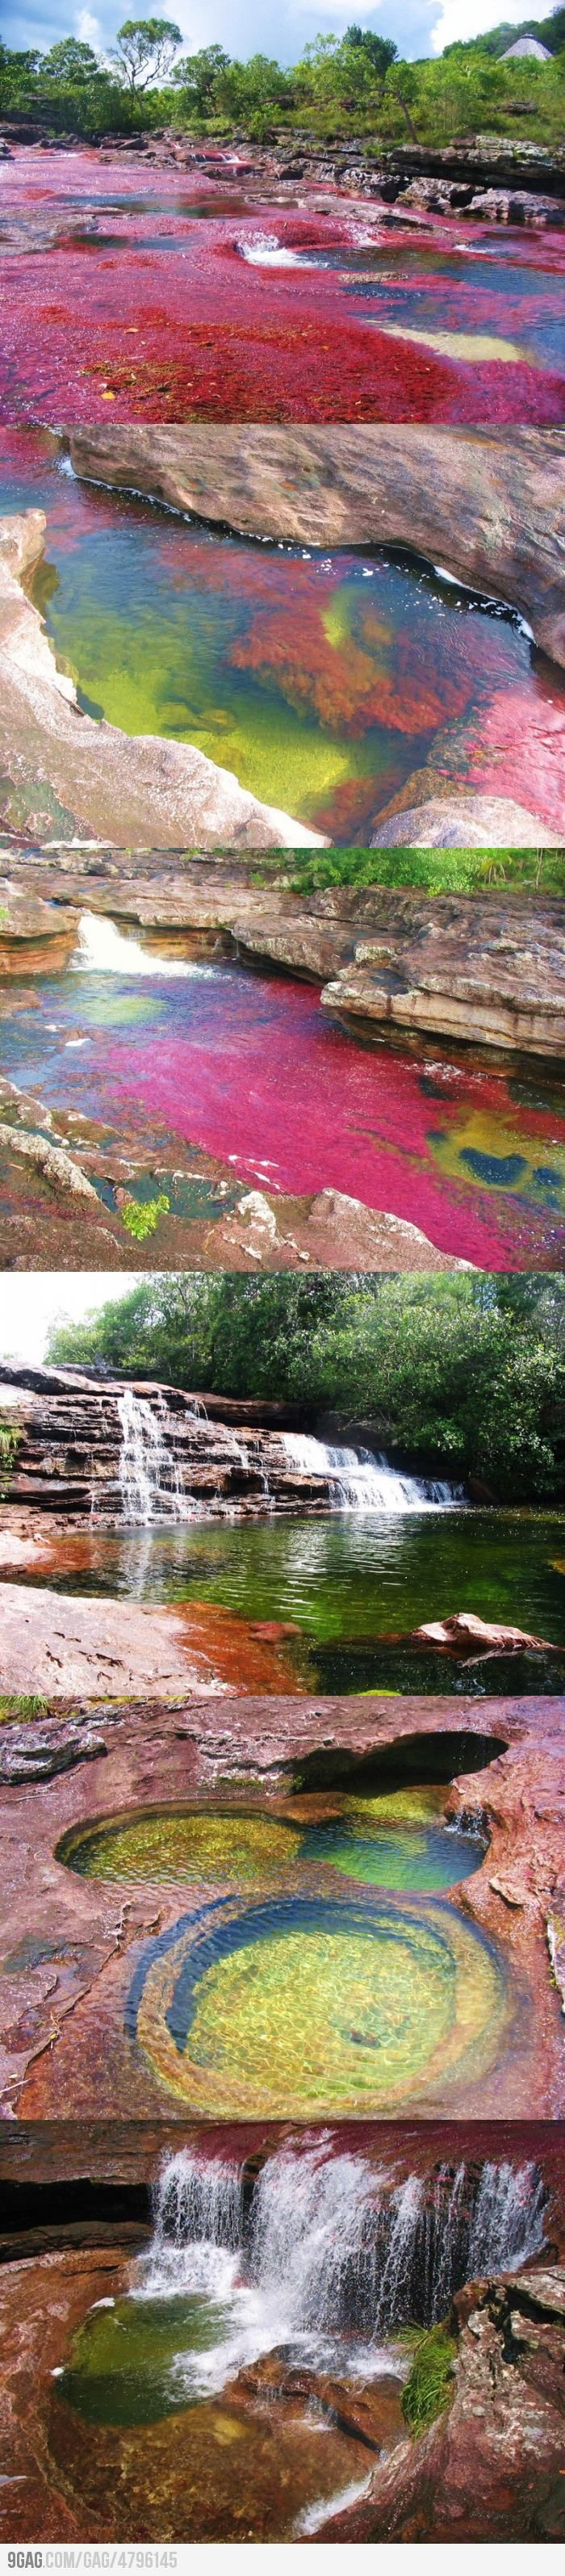 Seven Colors River In Colombia - (Caño Cristales)